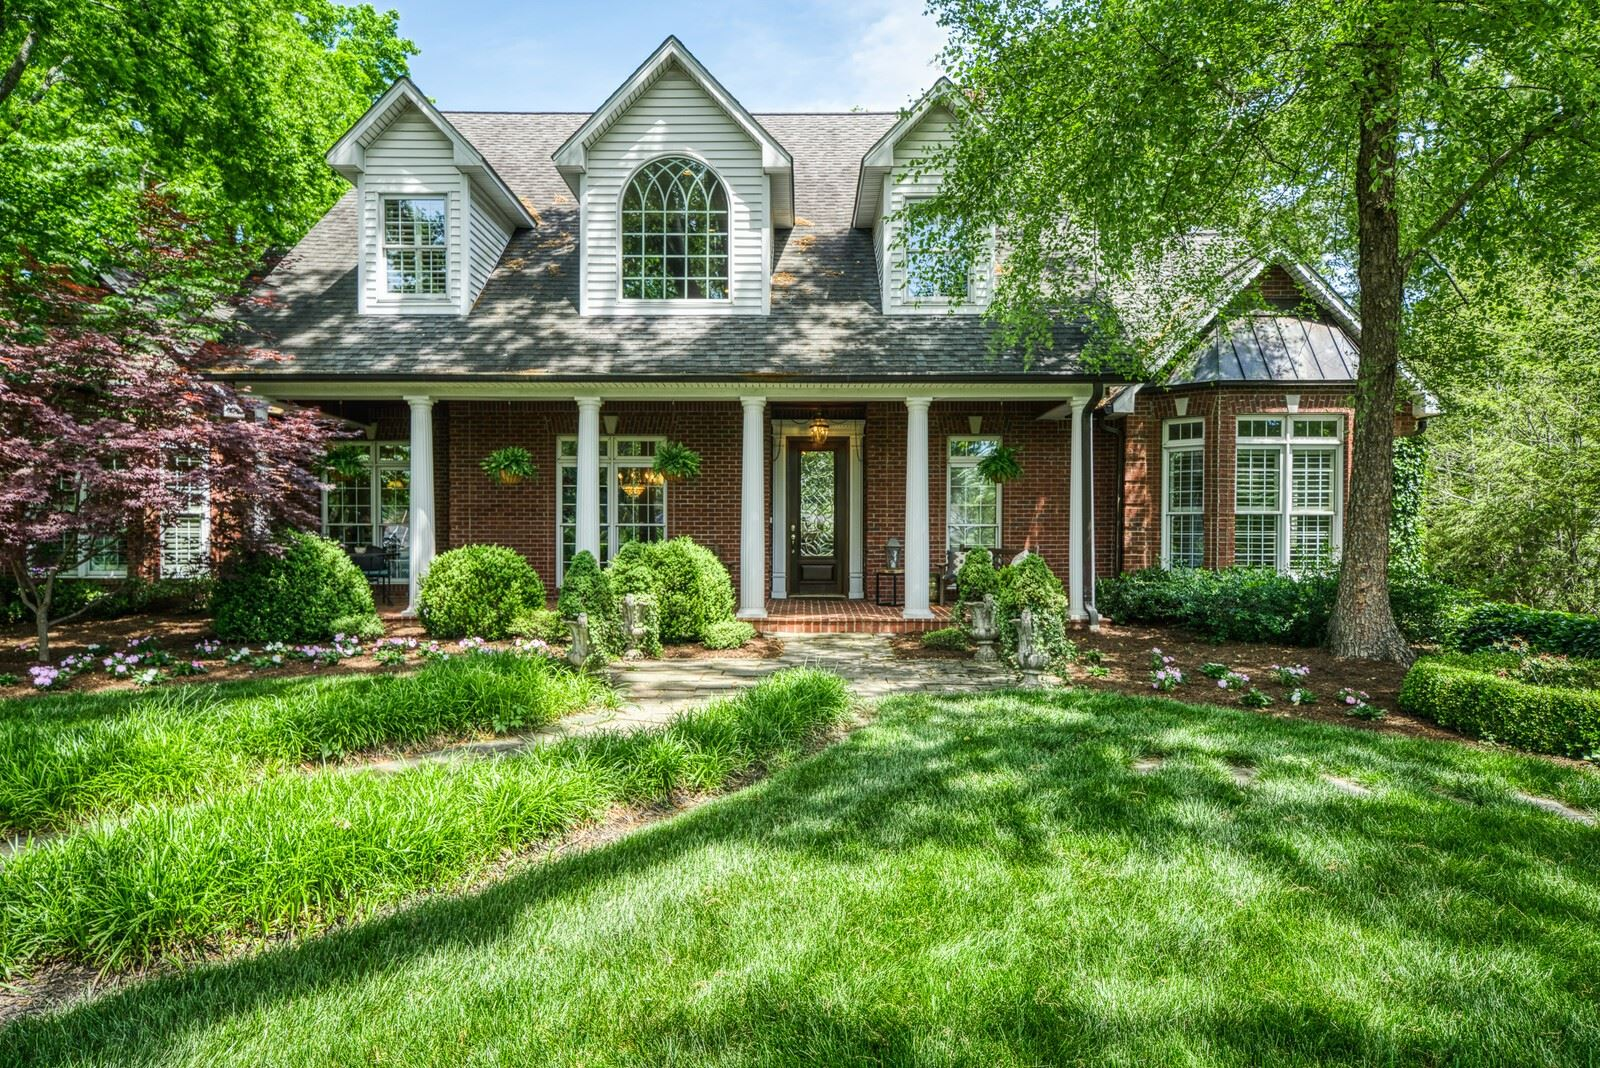 602 Terrace Hill Rd, Cookeville, TN 38501 - MLS#: 2256489